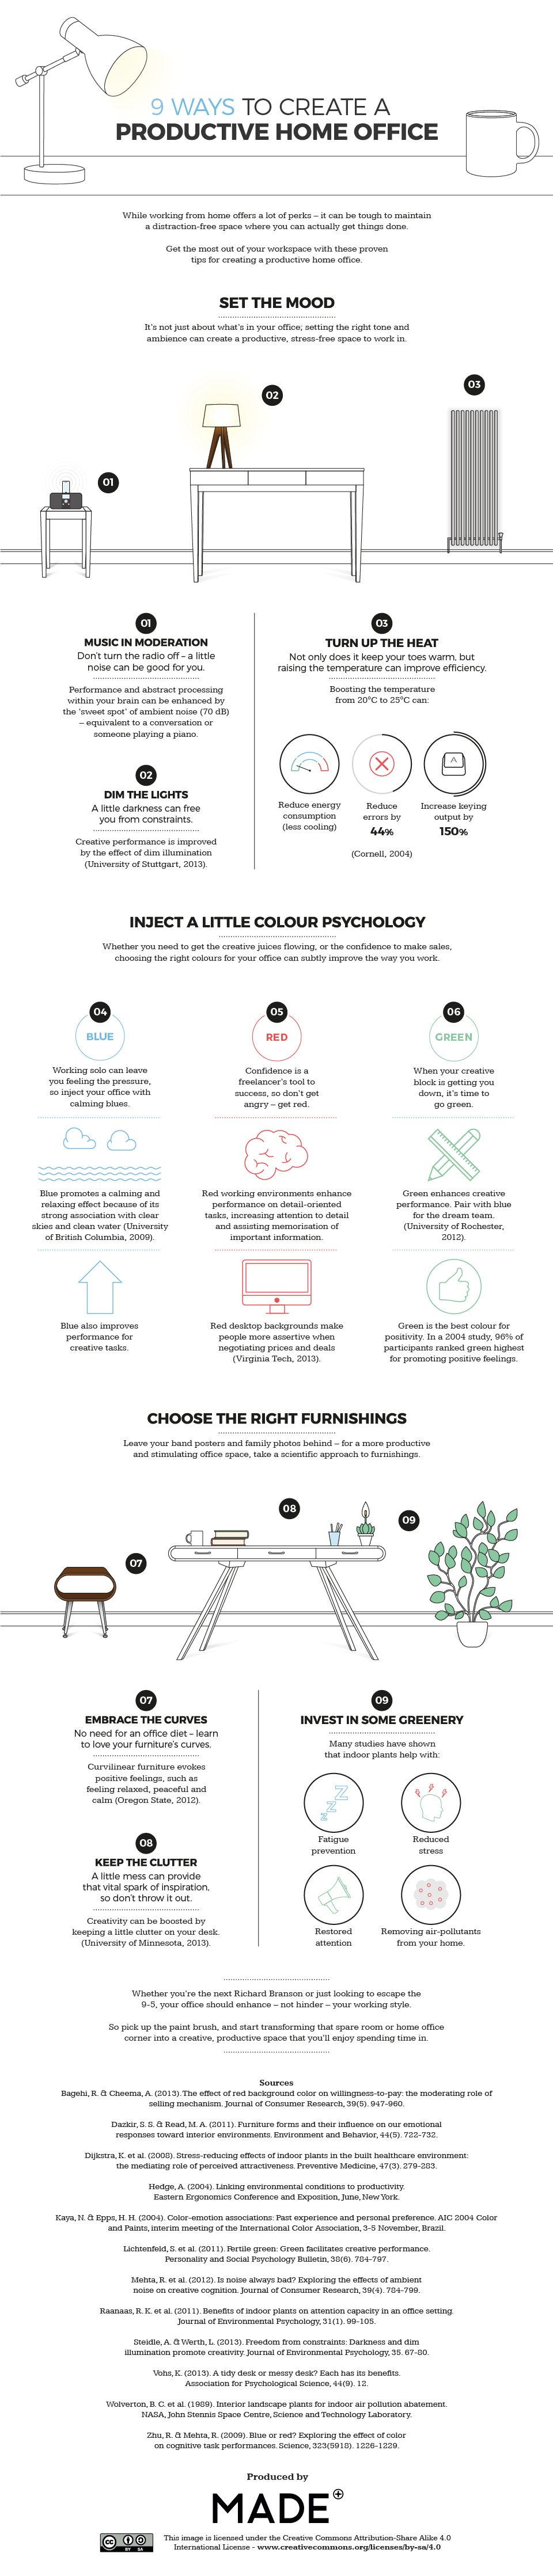 9-ways-to-create-a-productive-home-office